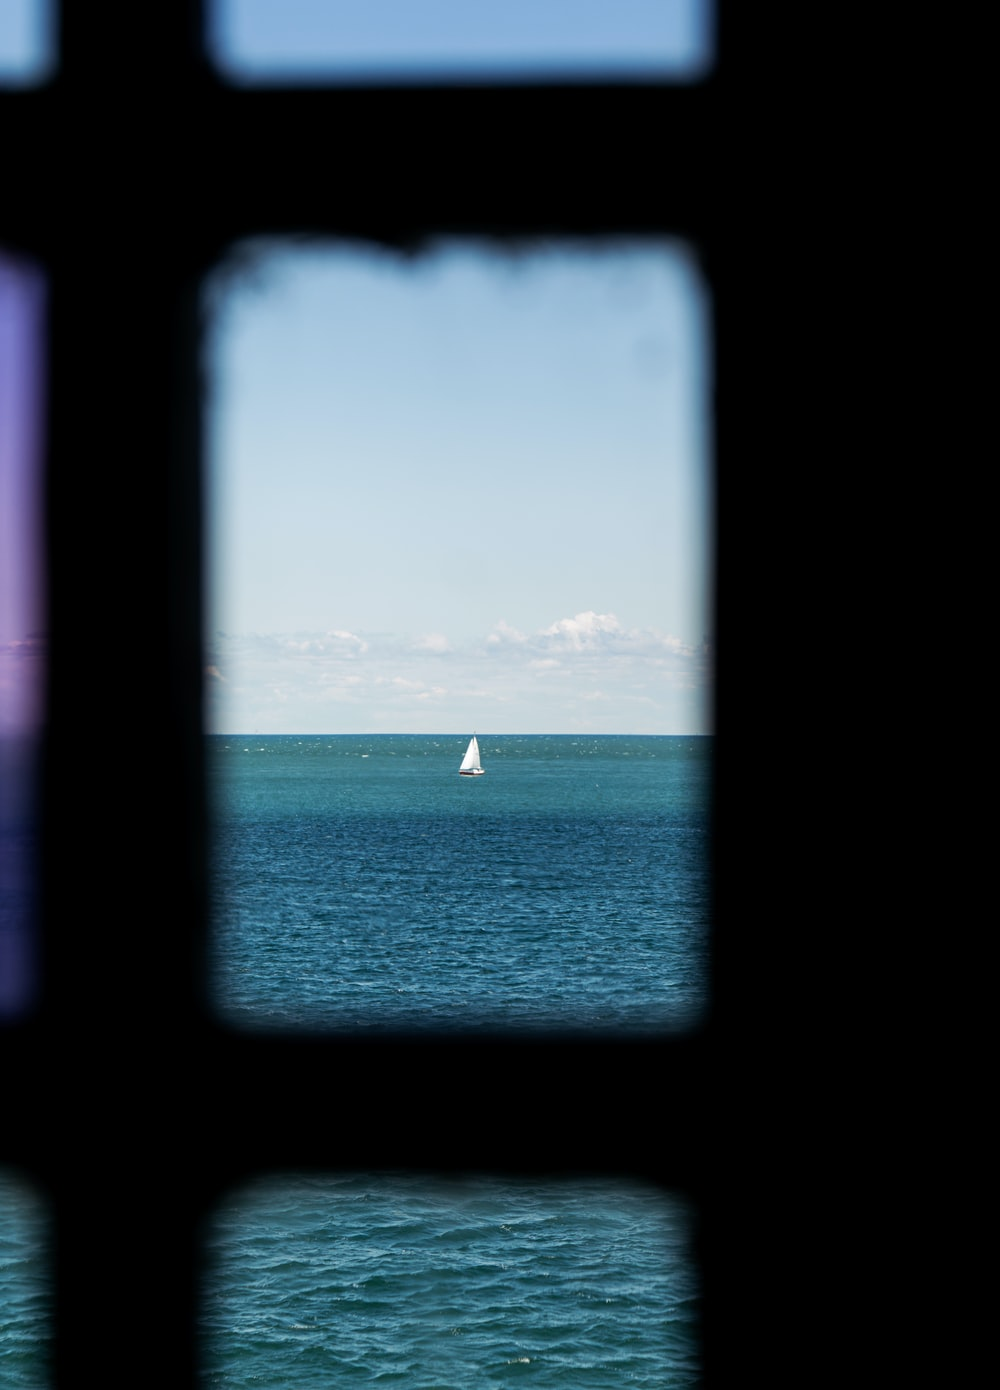 white sailboat on sea